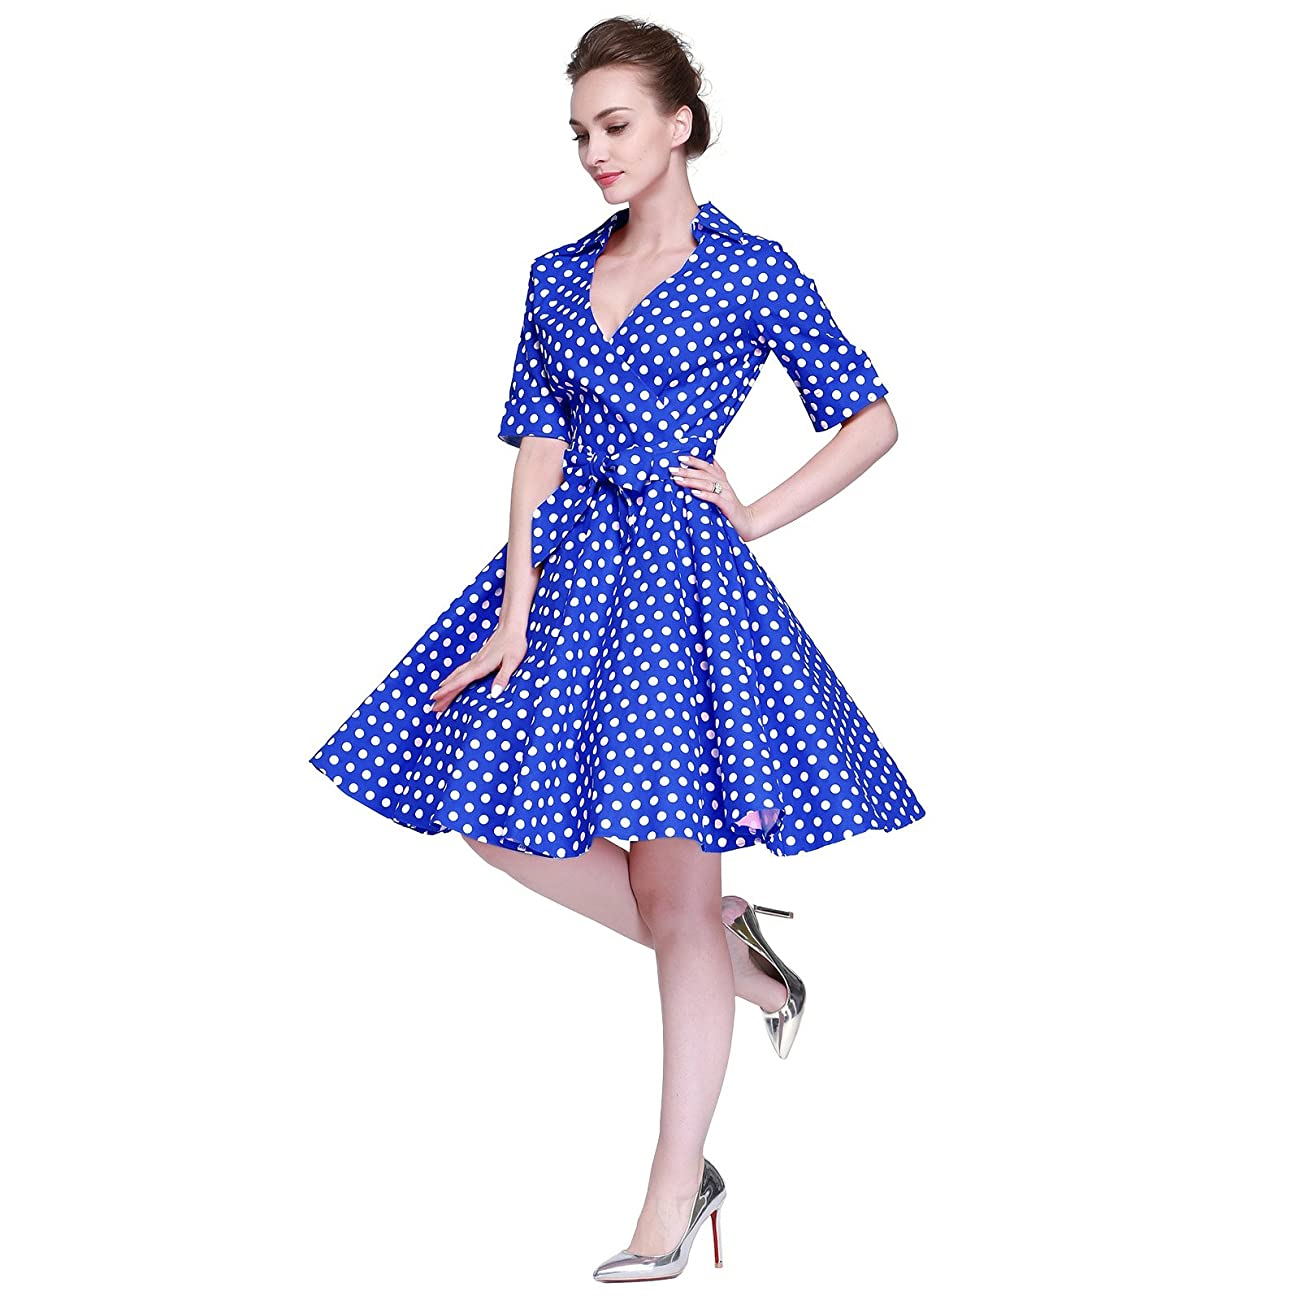 Heroecol Womens Vintage 1950s Dresses Cross V Neck Short Sleeve 50s 60s Style Retro Swing Cotton Dress 3